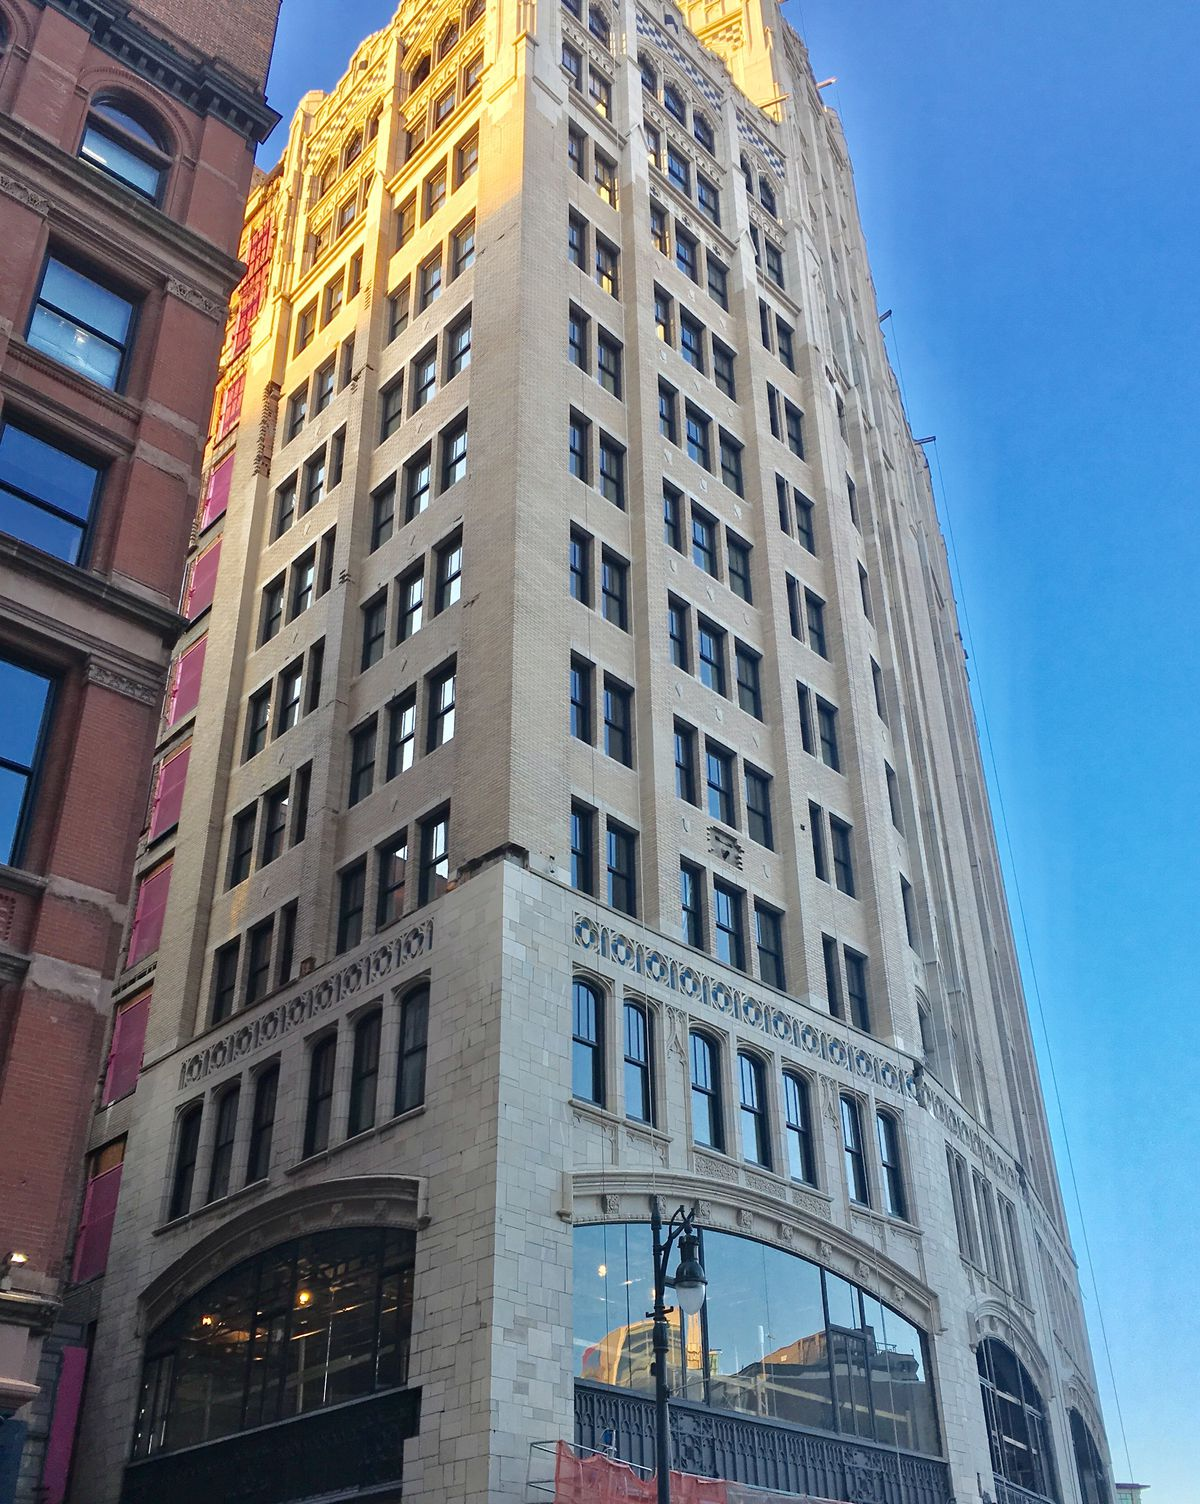 The exterior of the Metropolitan building in Detroit. The facade is tan brick with many windows.